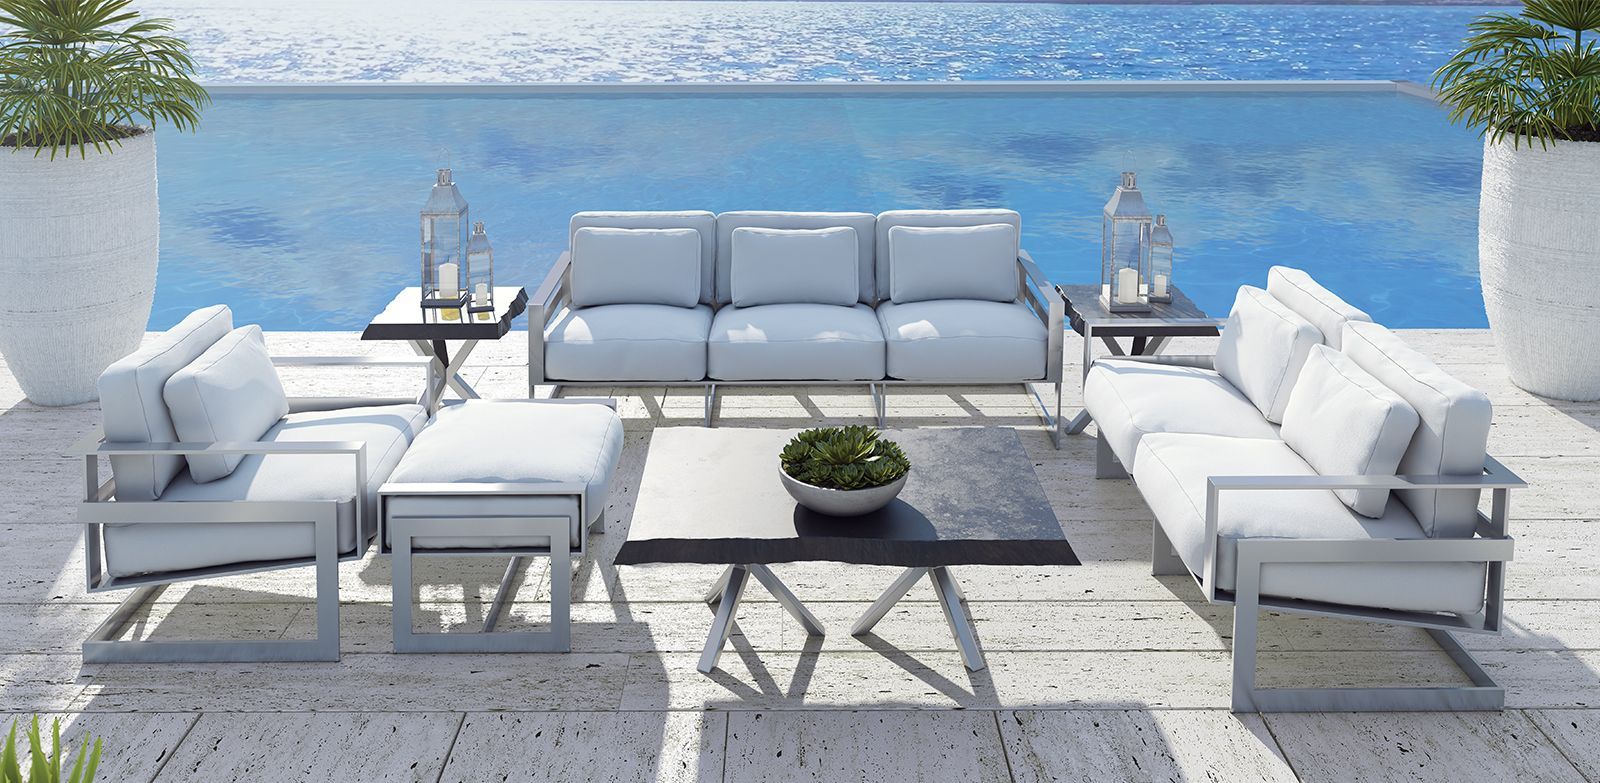 Eclipse Collection Castelle Luxury Outdoor Furniture Luxury Outdoor Furniture Luxury Patio Furniture Outdoor Furniture